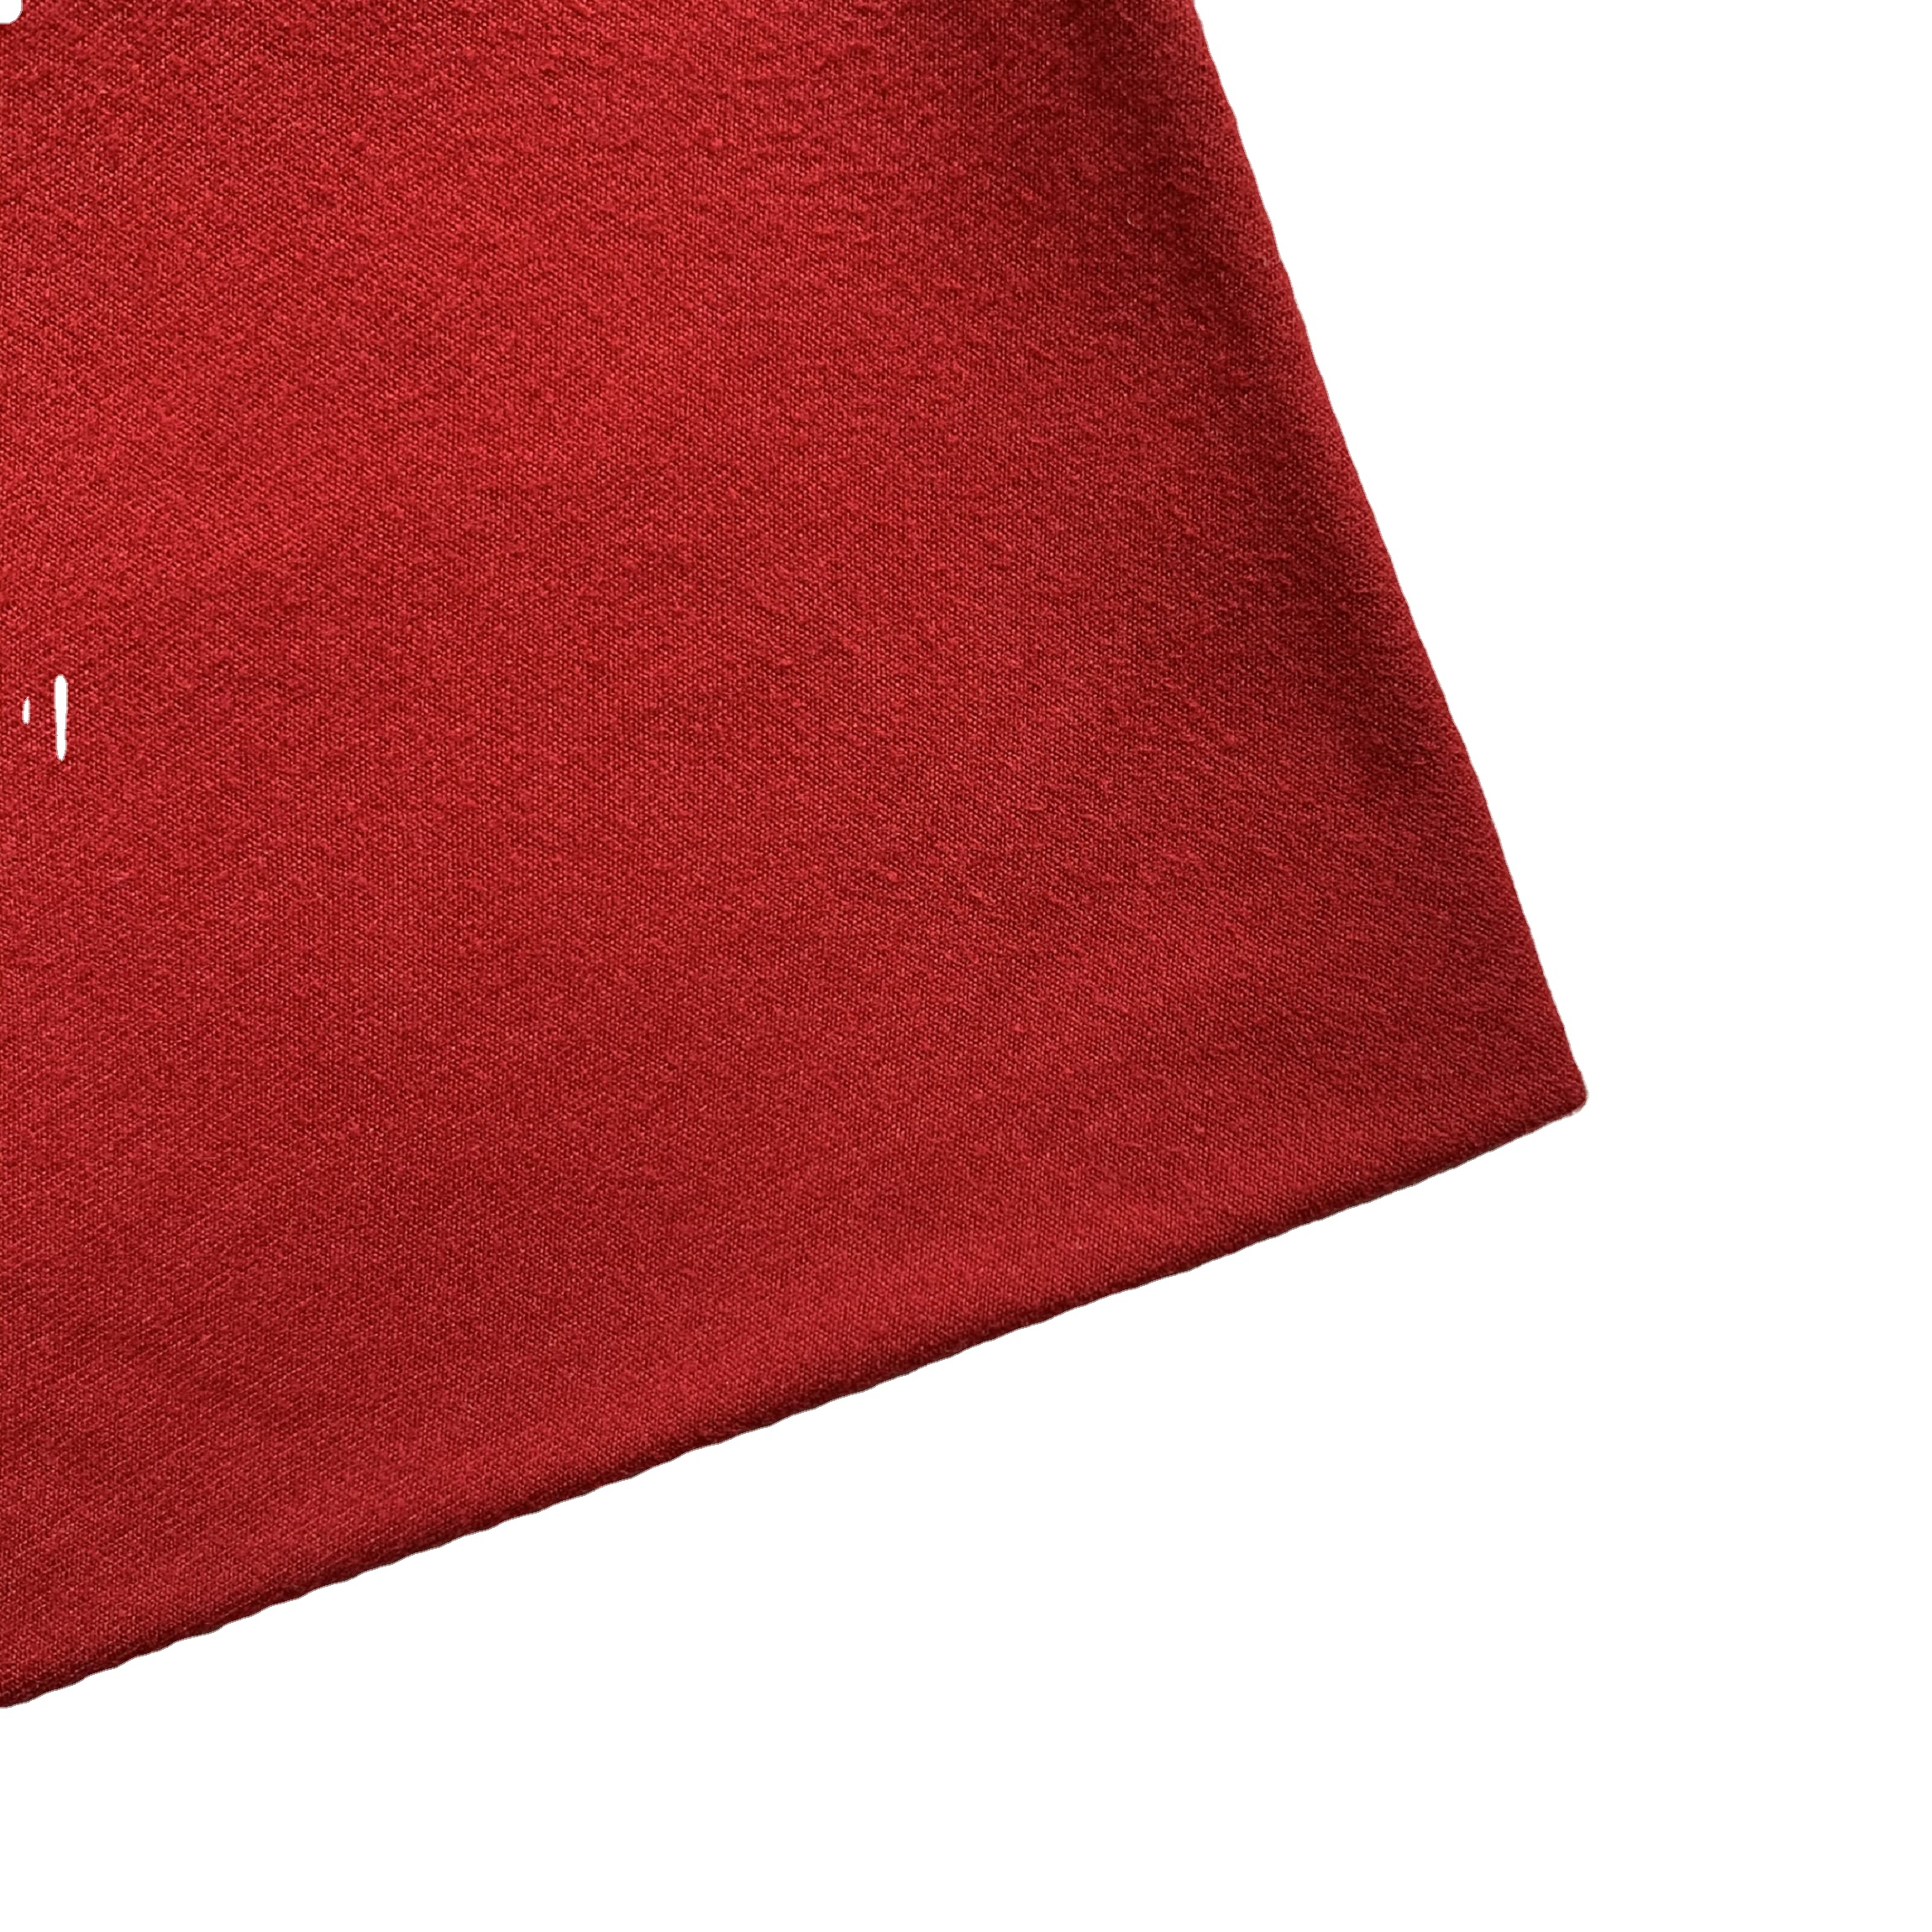 2020 Great <strong>material</strong> hot selling cheap rose madder polyester knit jersey dty brush fabric